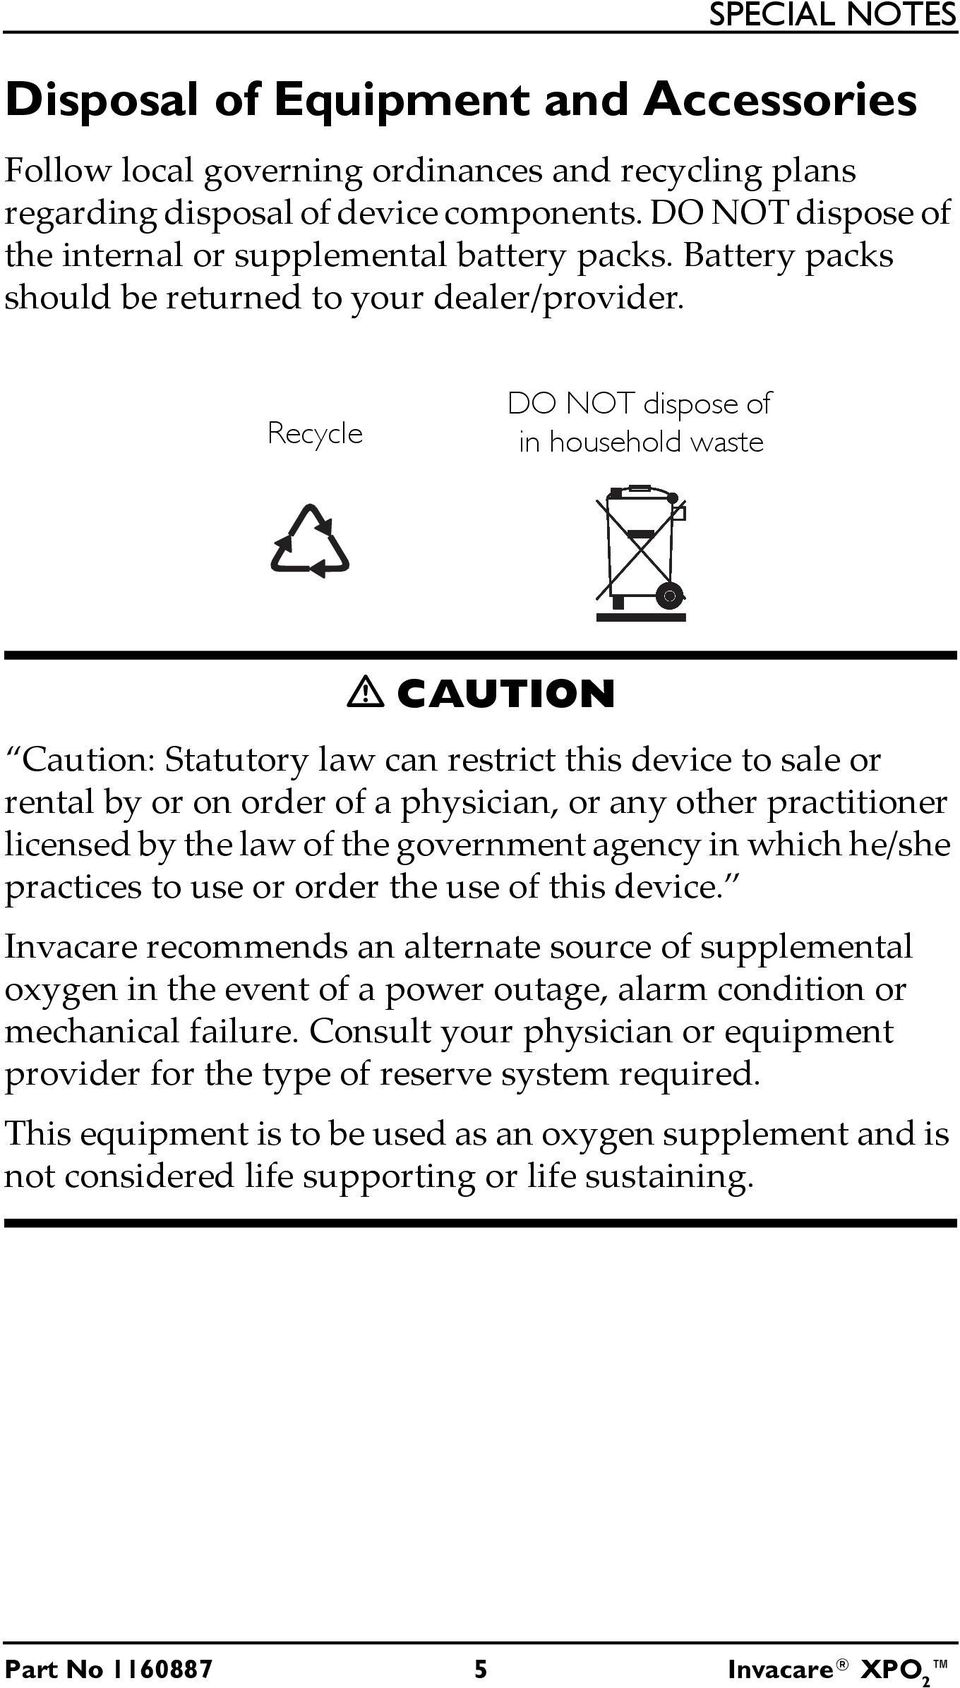 Recycle DO NOT dispose of in household waste CAUTION Caution: Statutory law can restrict this device to sale or rental by or on order of a physician, or any other practitioner licensed by the law of